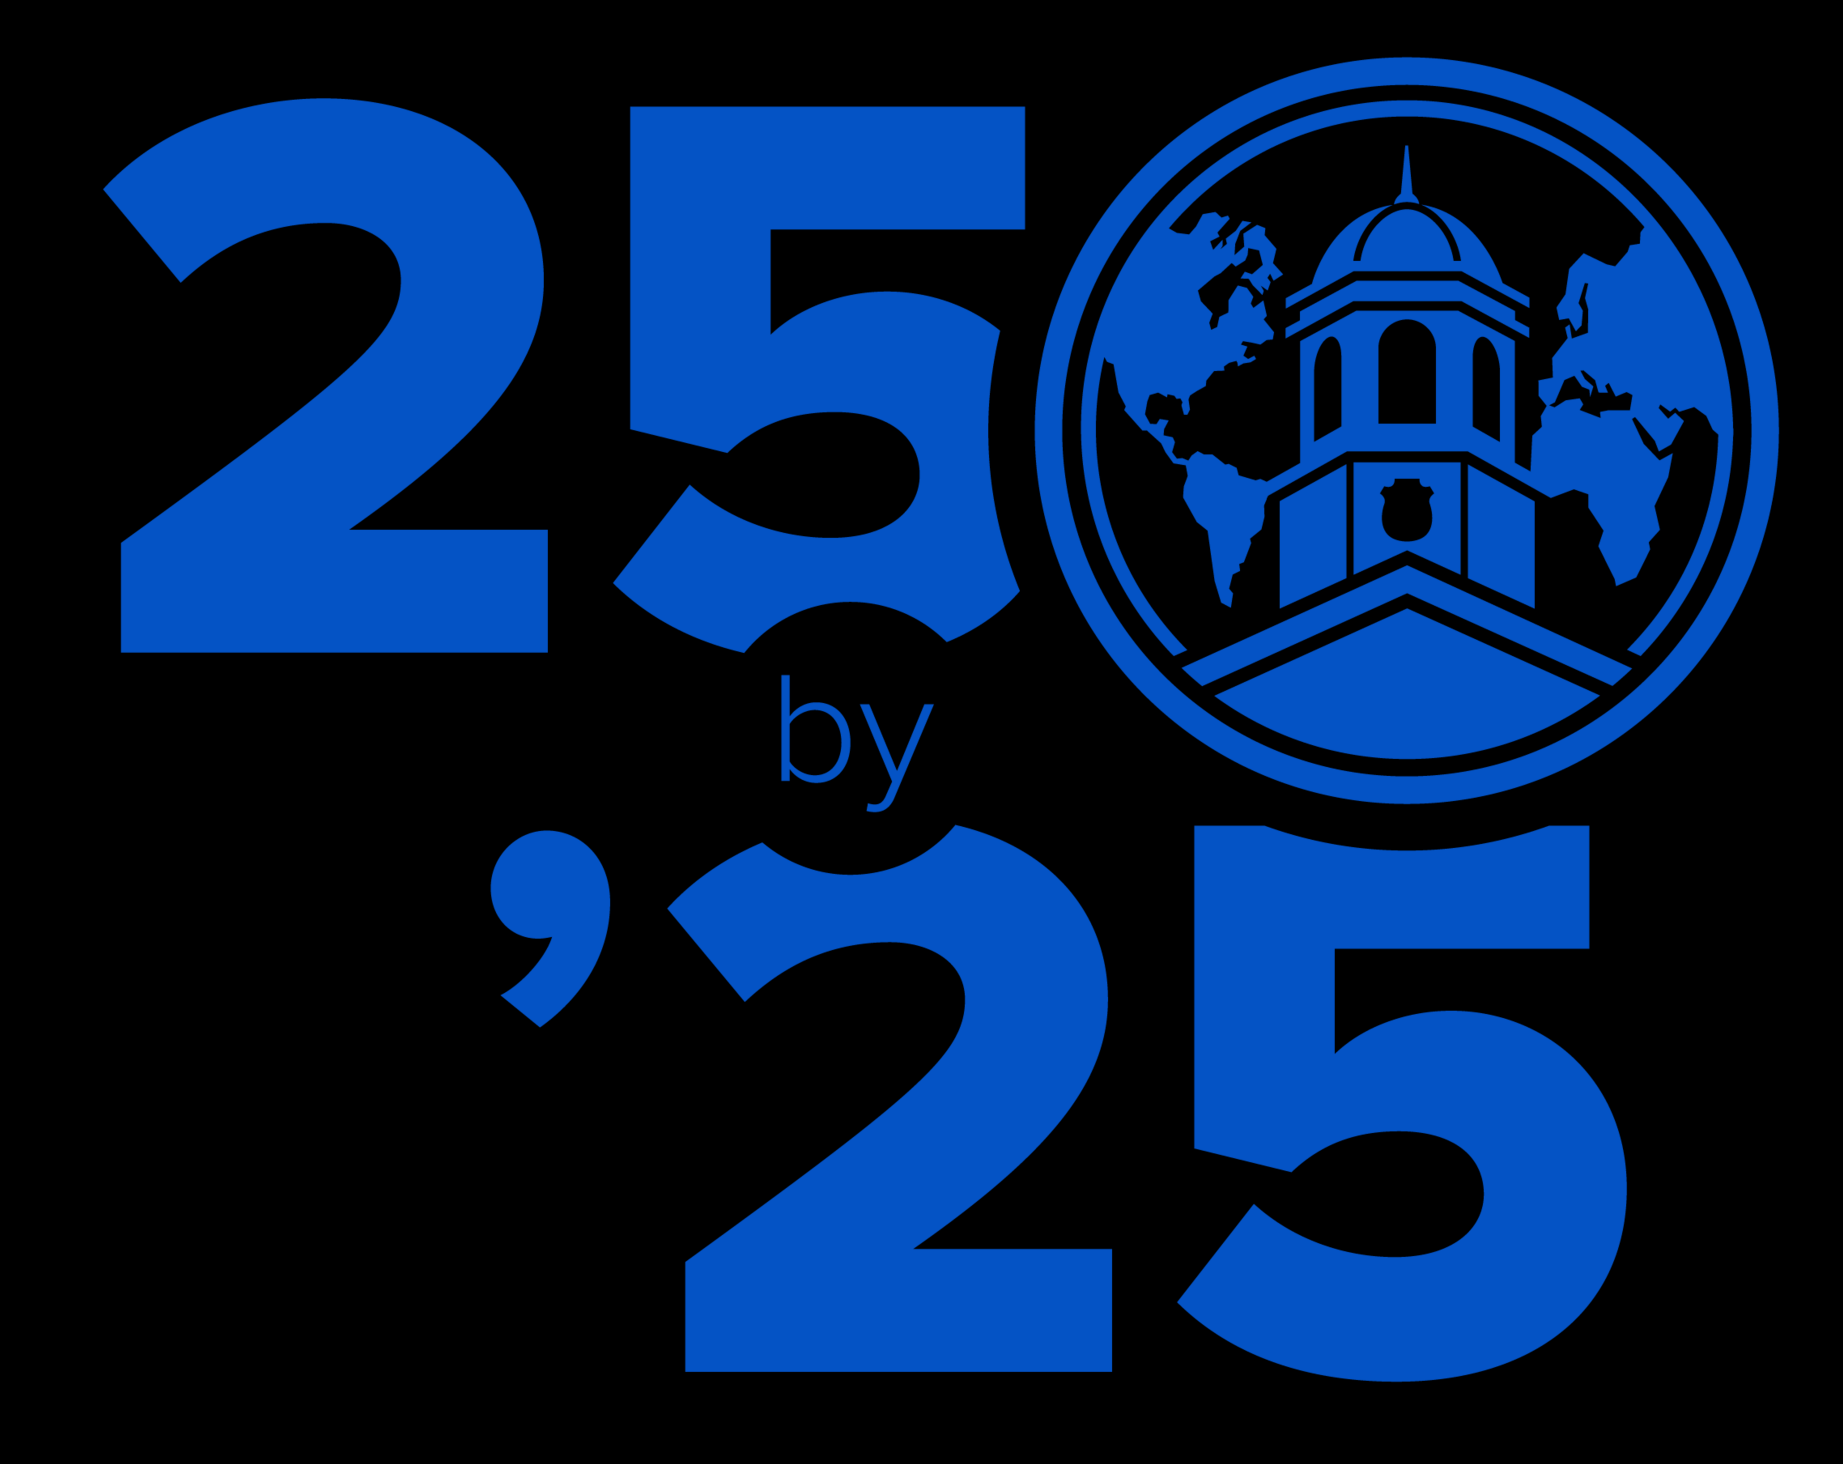 25 by 25 Logo 2016 blue large.png